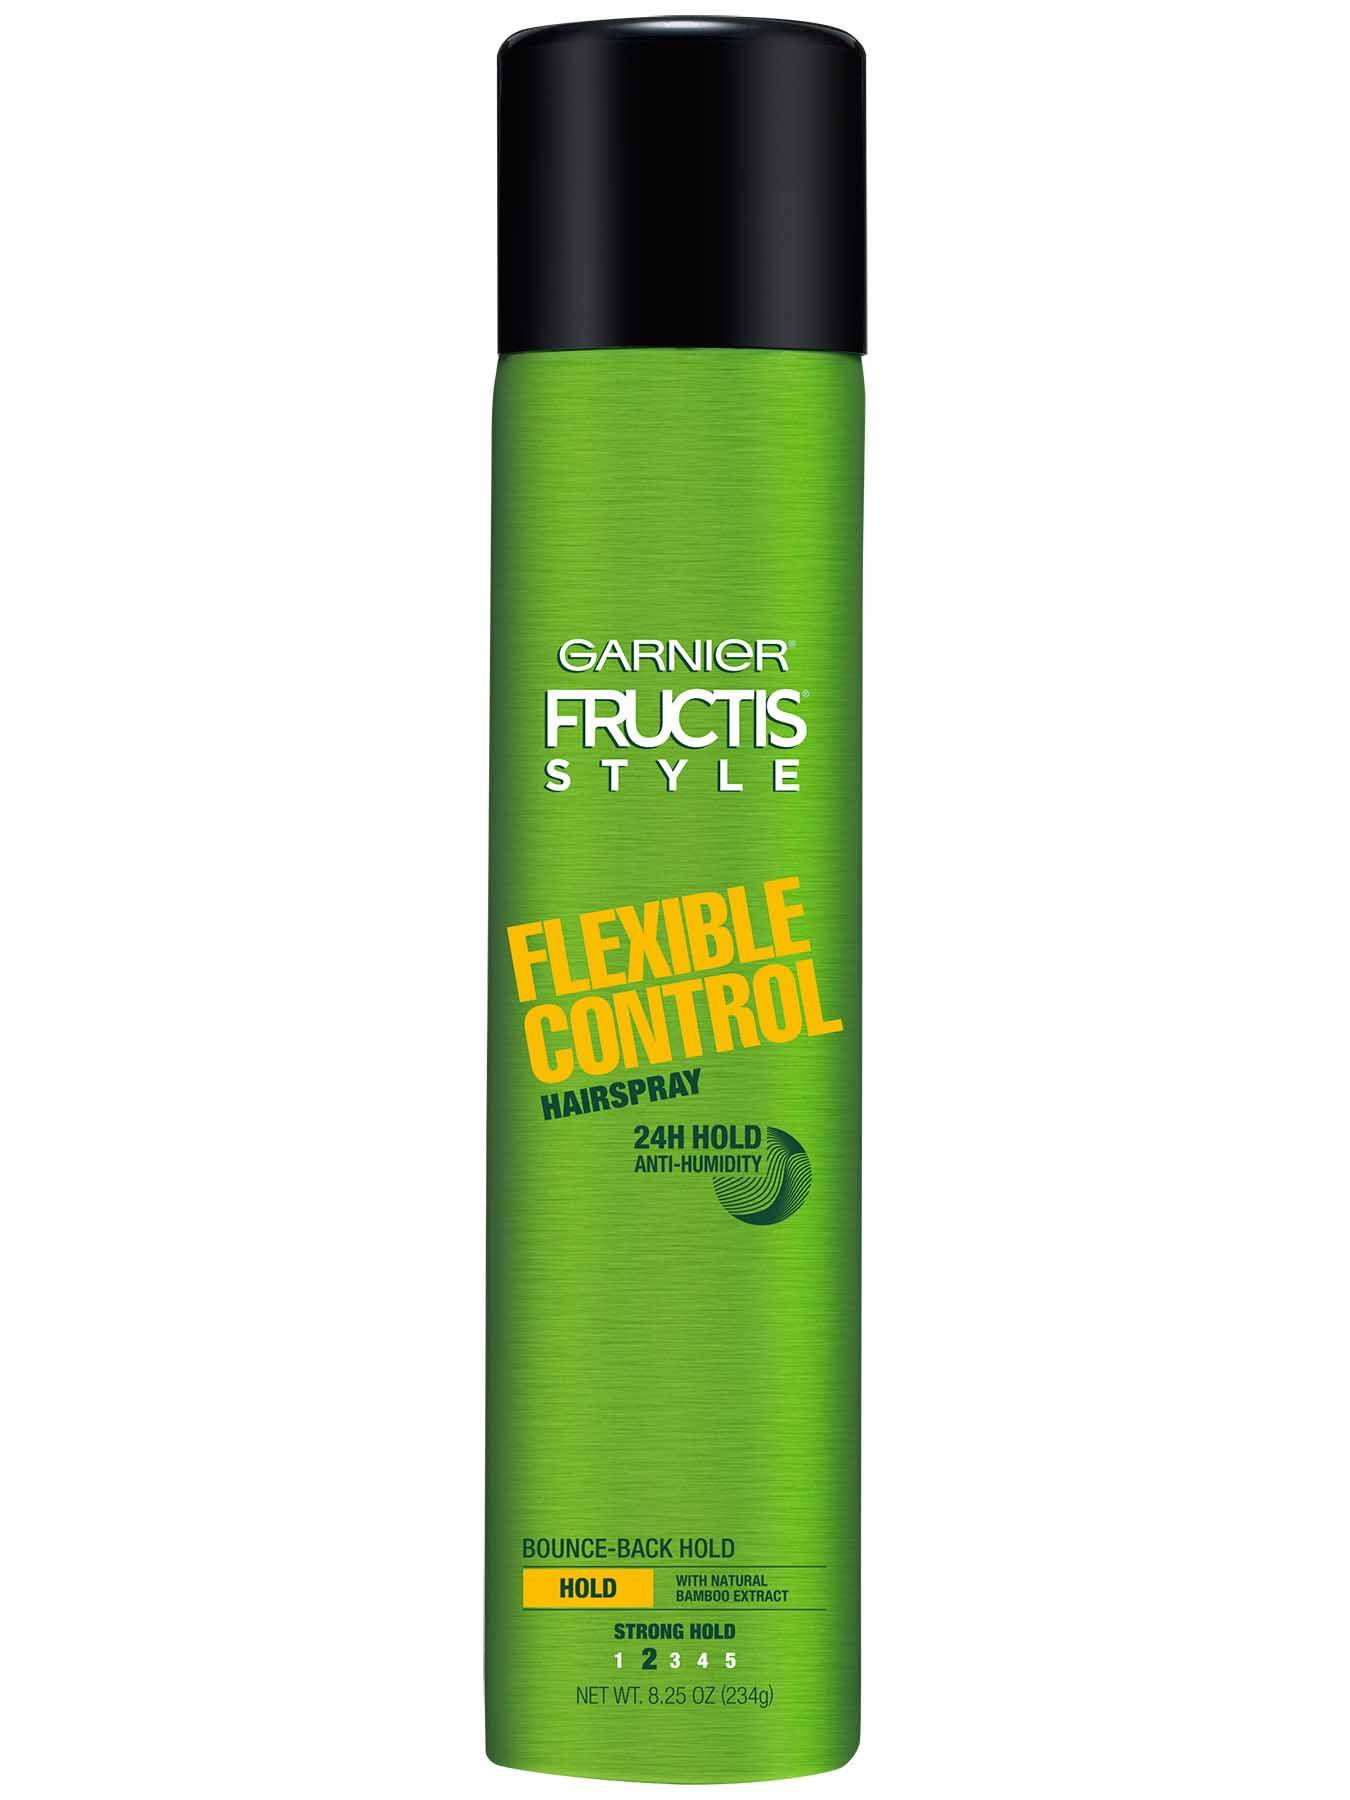 Garnier Fructis Style Flexible Control Hairspray Front Of Bottle